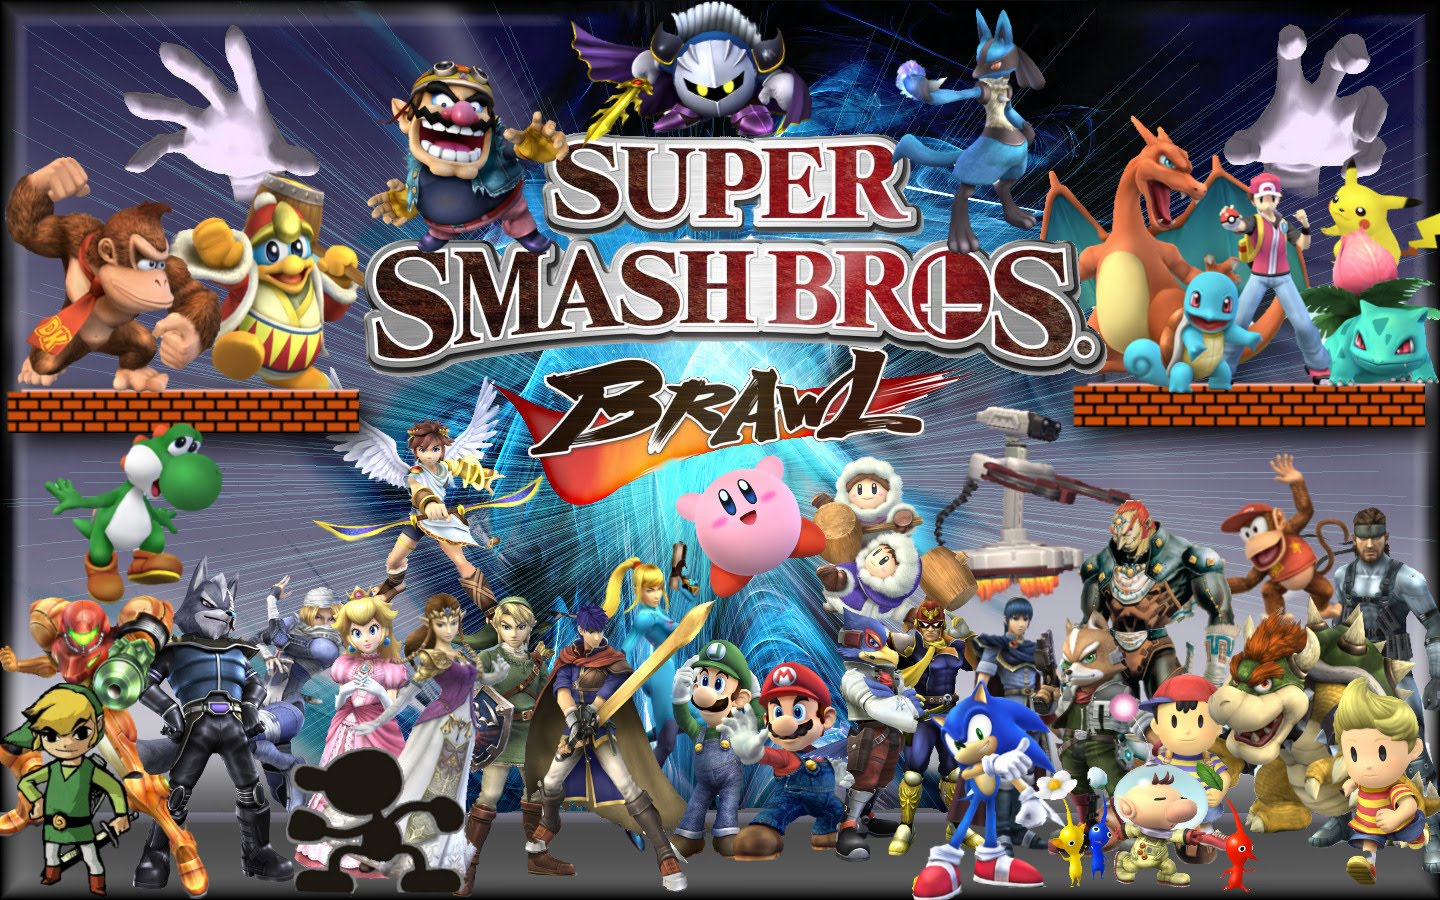 Super Smash Bros  - Special Tournament with PRIZES on Dec